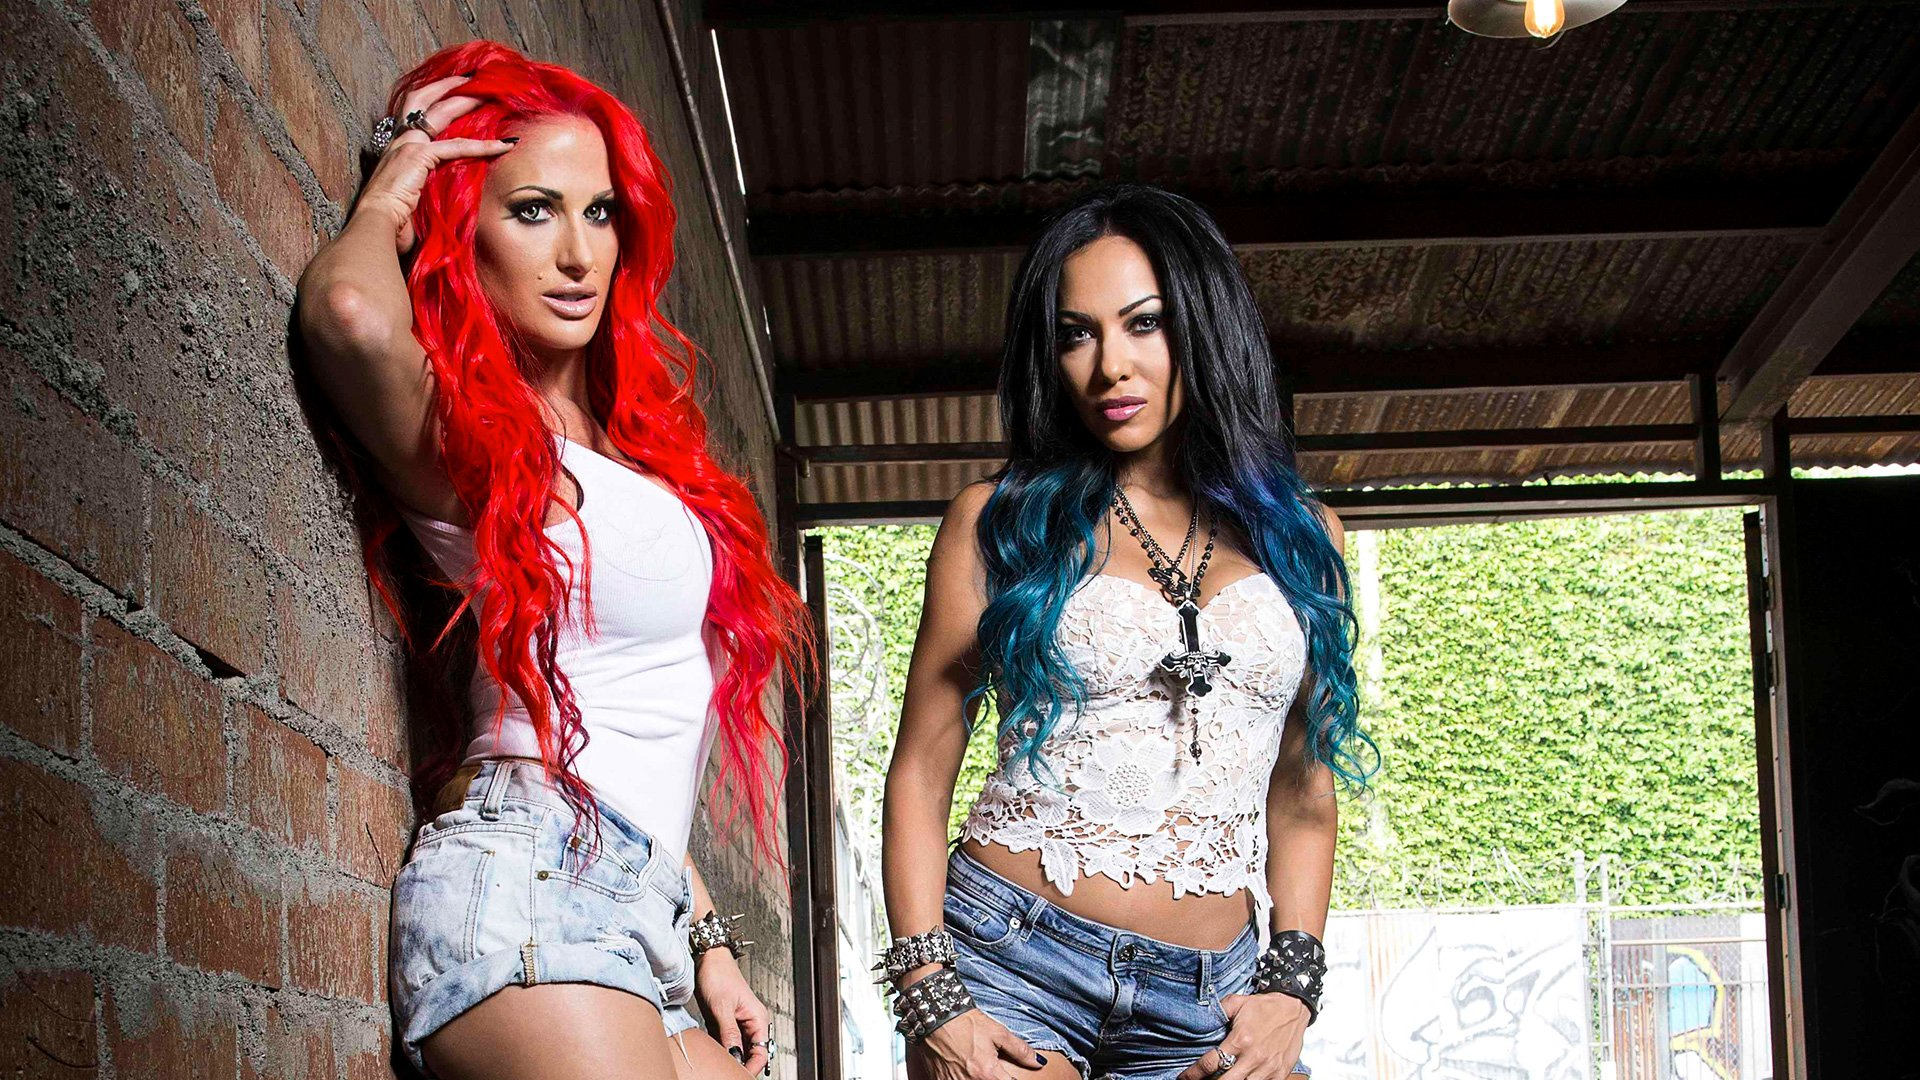 Butcher Babies Full HD Wallpaper and Background Image | 1920x1080 | ID:783661